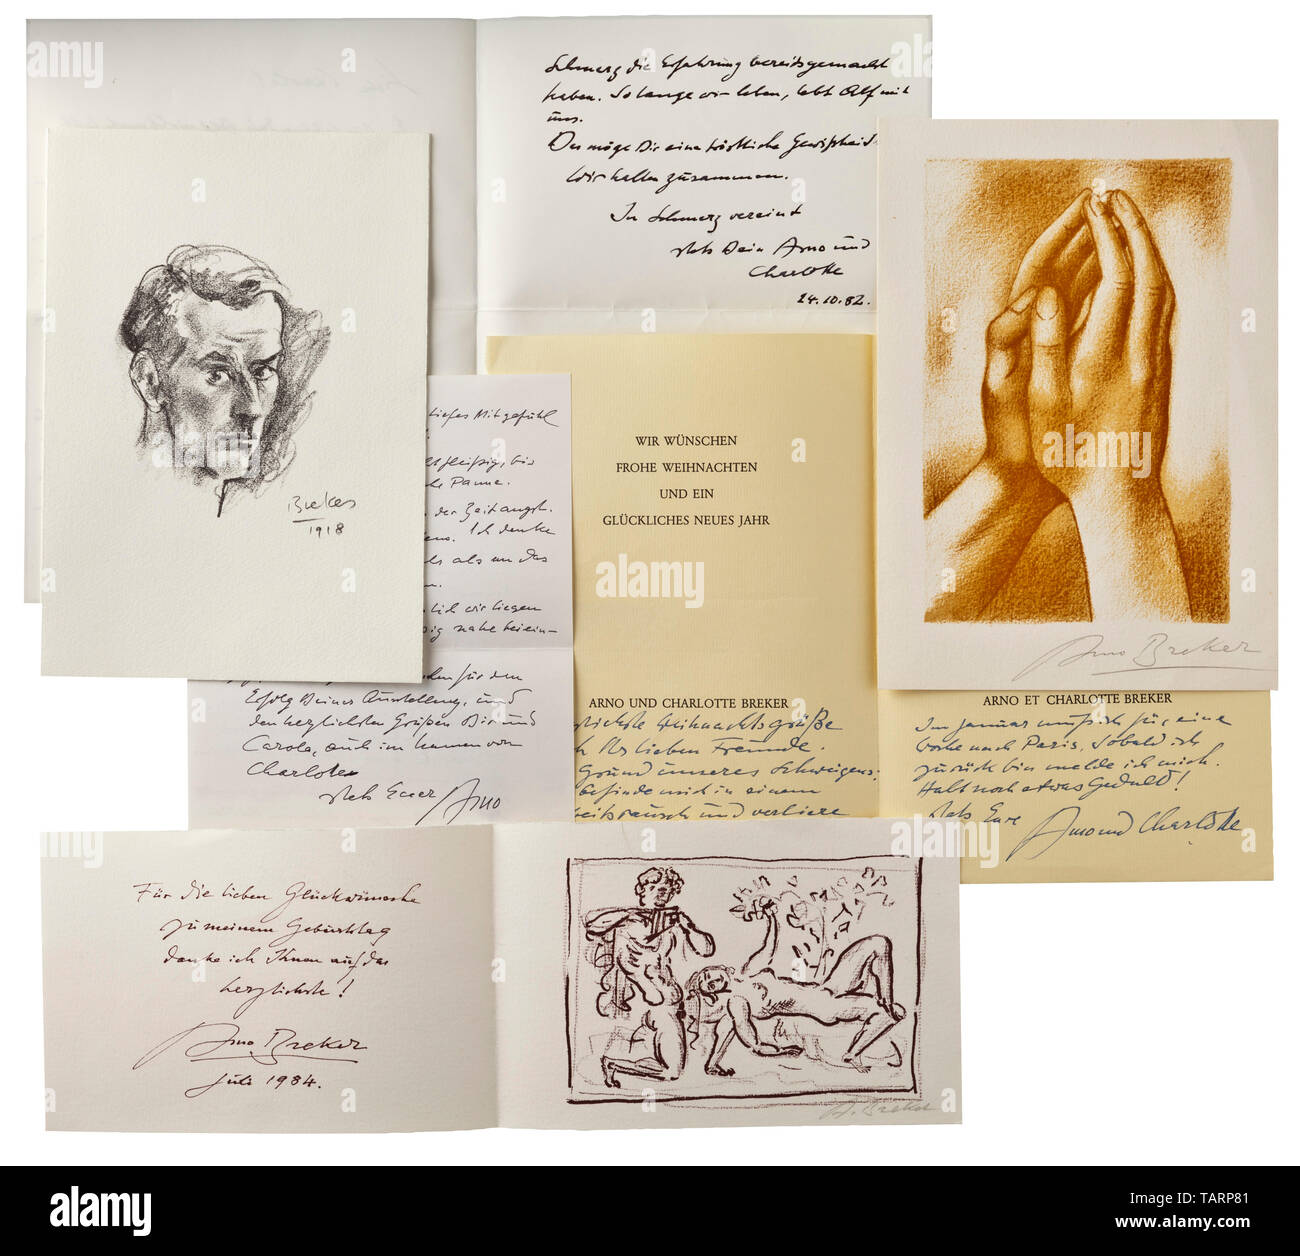 Arno Breker (1900 - 1991) - 13 letters from the period 1972 - 1991, Letters to his friend, the painter and graphic artist Alf Bayrle (1900 - 1982), and to Bayrle's wife Carola. Nine letters with Breker's original signature in the text or on graphics by Breker. Among them invitations to exhibitions, Christmas greetings, letters of condolence with very personal content as in the hand-written New Year greetings by Breker dated 1976, which say: (tr.) 'I am so immersed in my work that I lose my sense of time.' or a hand-written letter by Breker to Bayrle dated 2 December 1980, i, Editorial-Use-Only - Stock Image